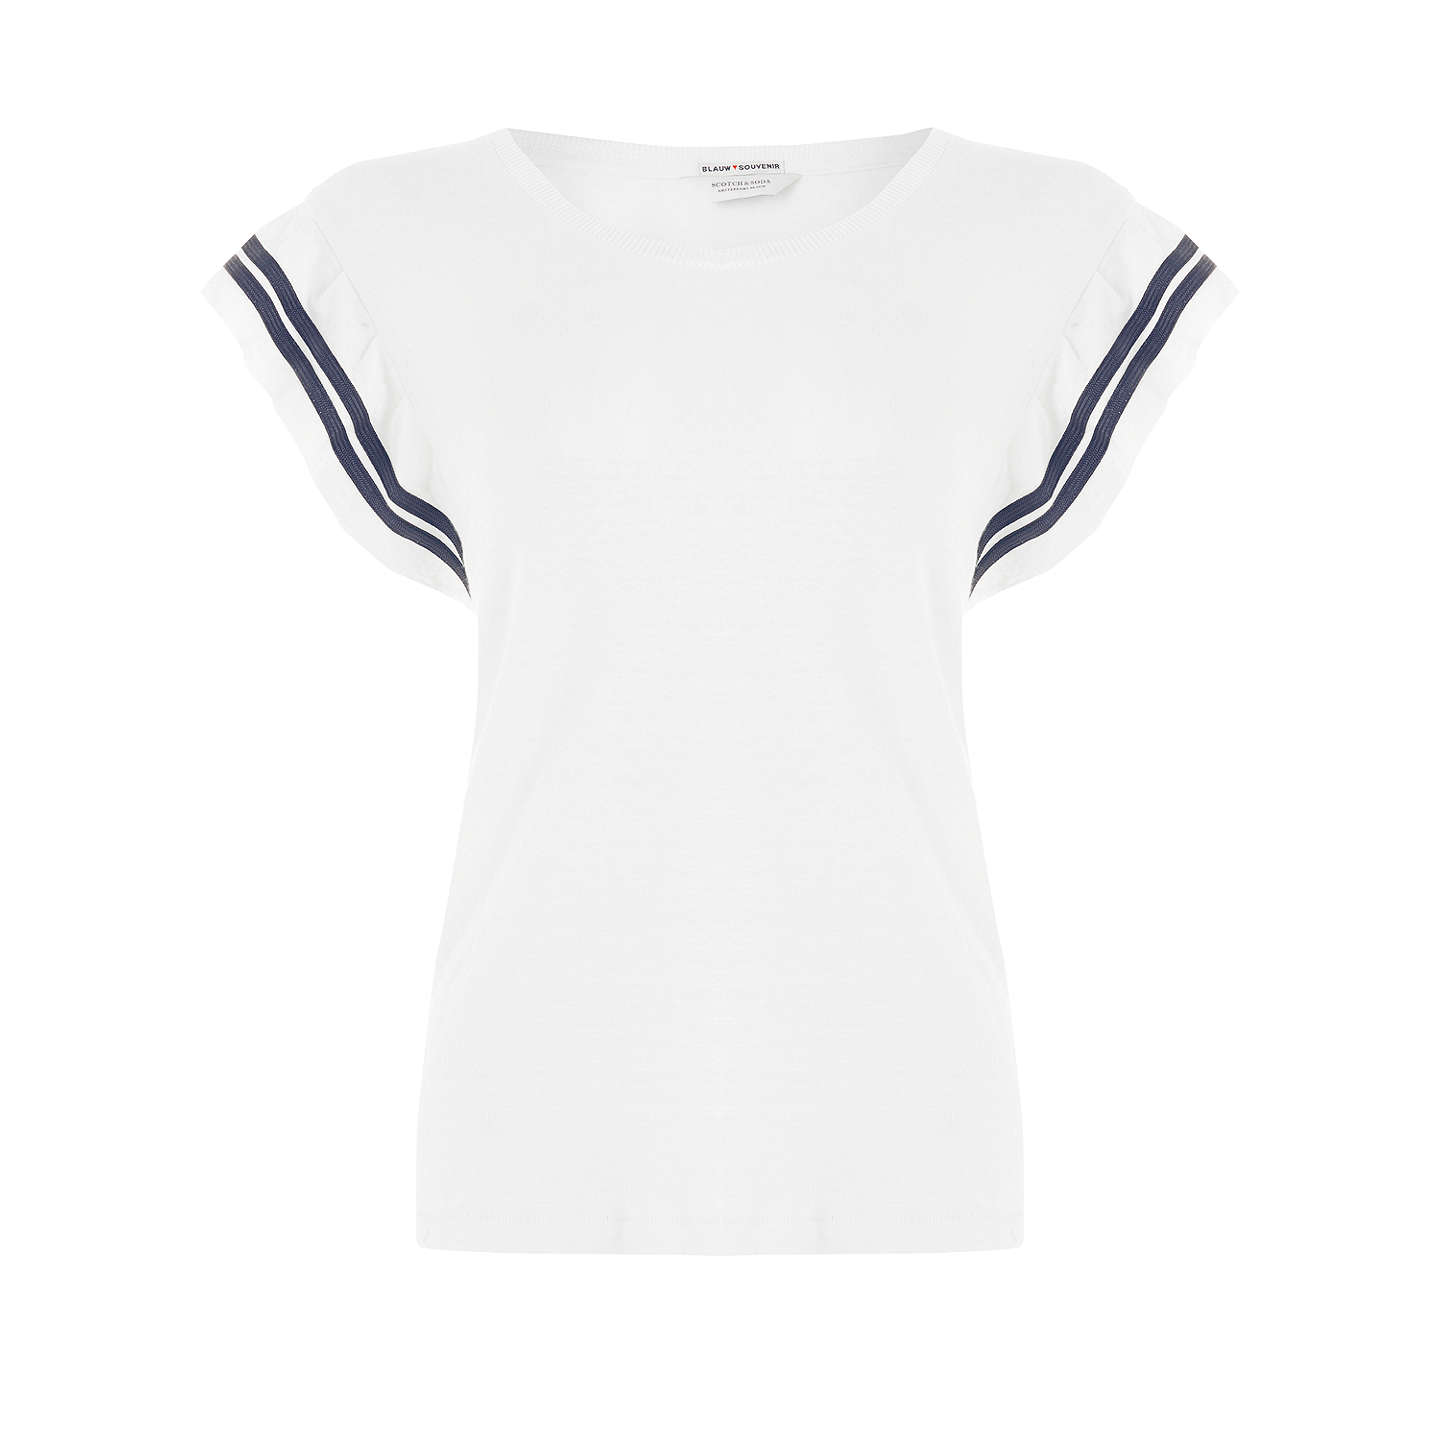 BuyMaison Scotch Ruffle Sleeve Top, White, XS Online at johnlewis.com